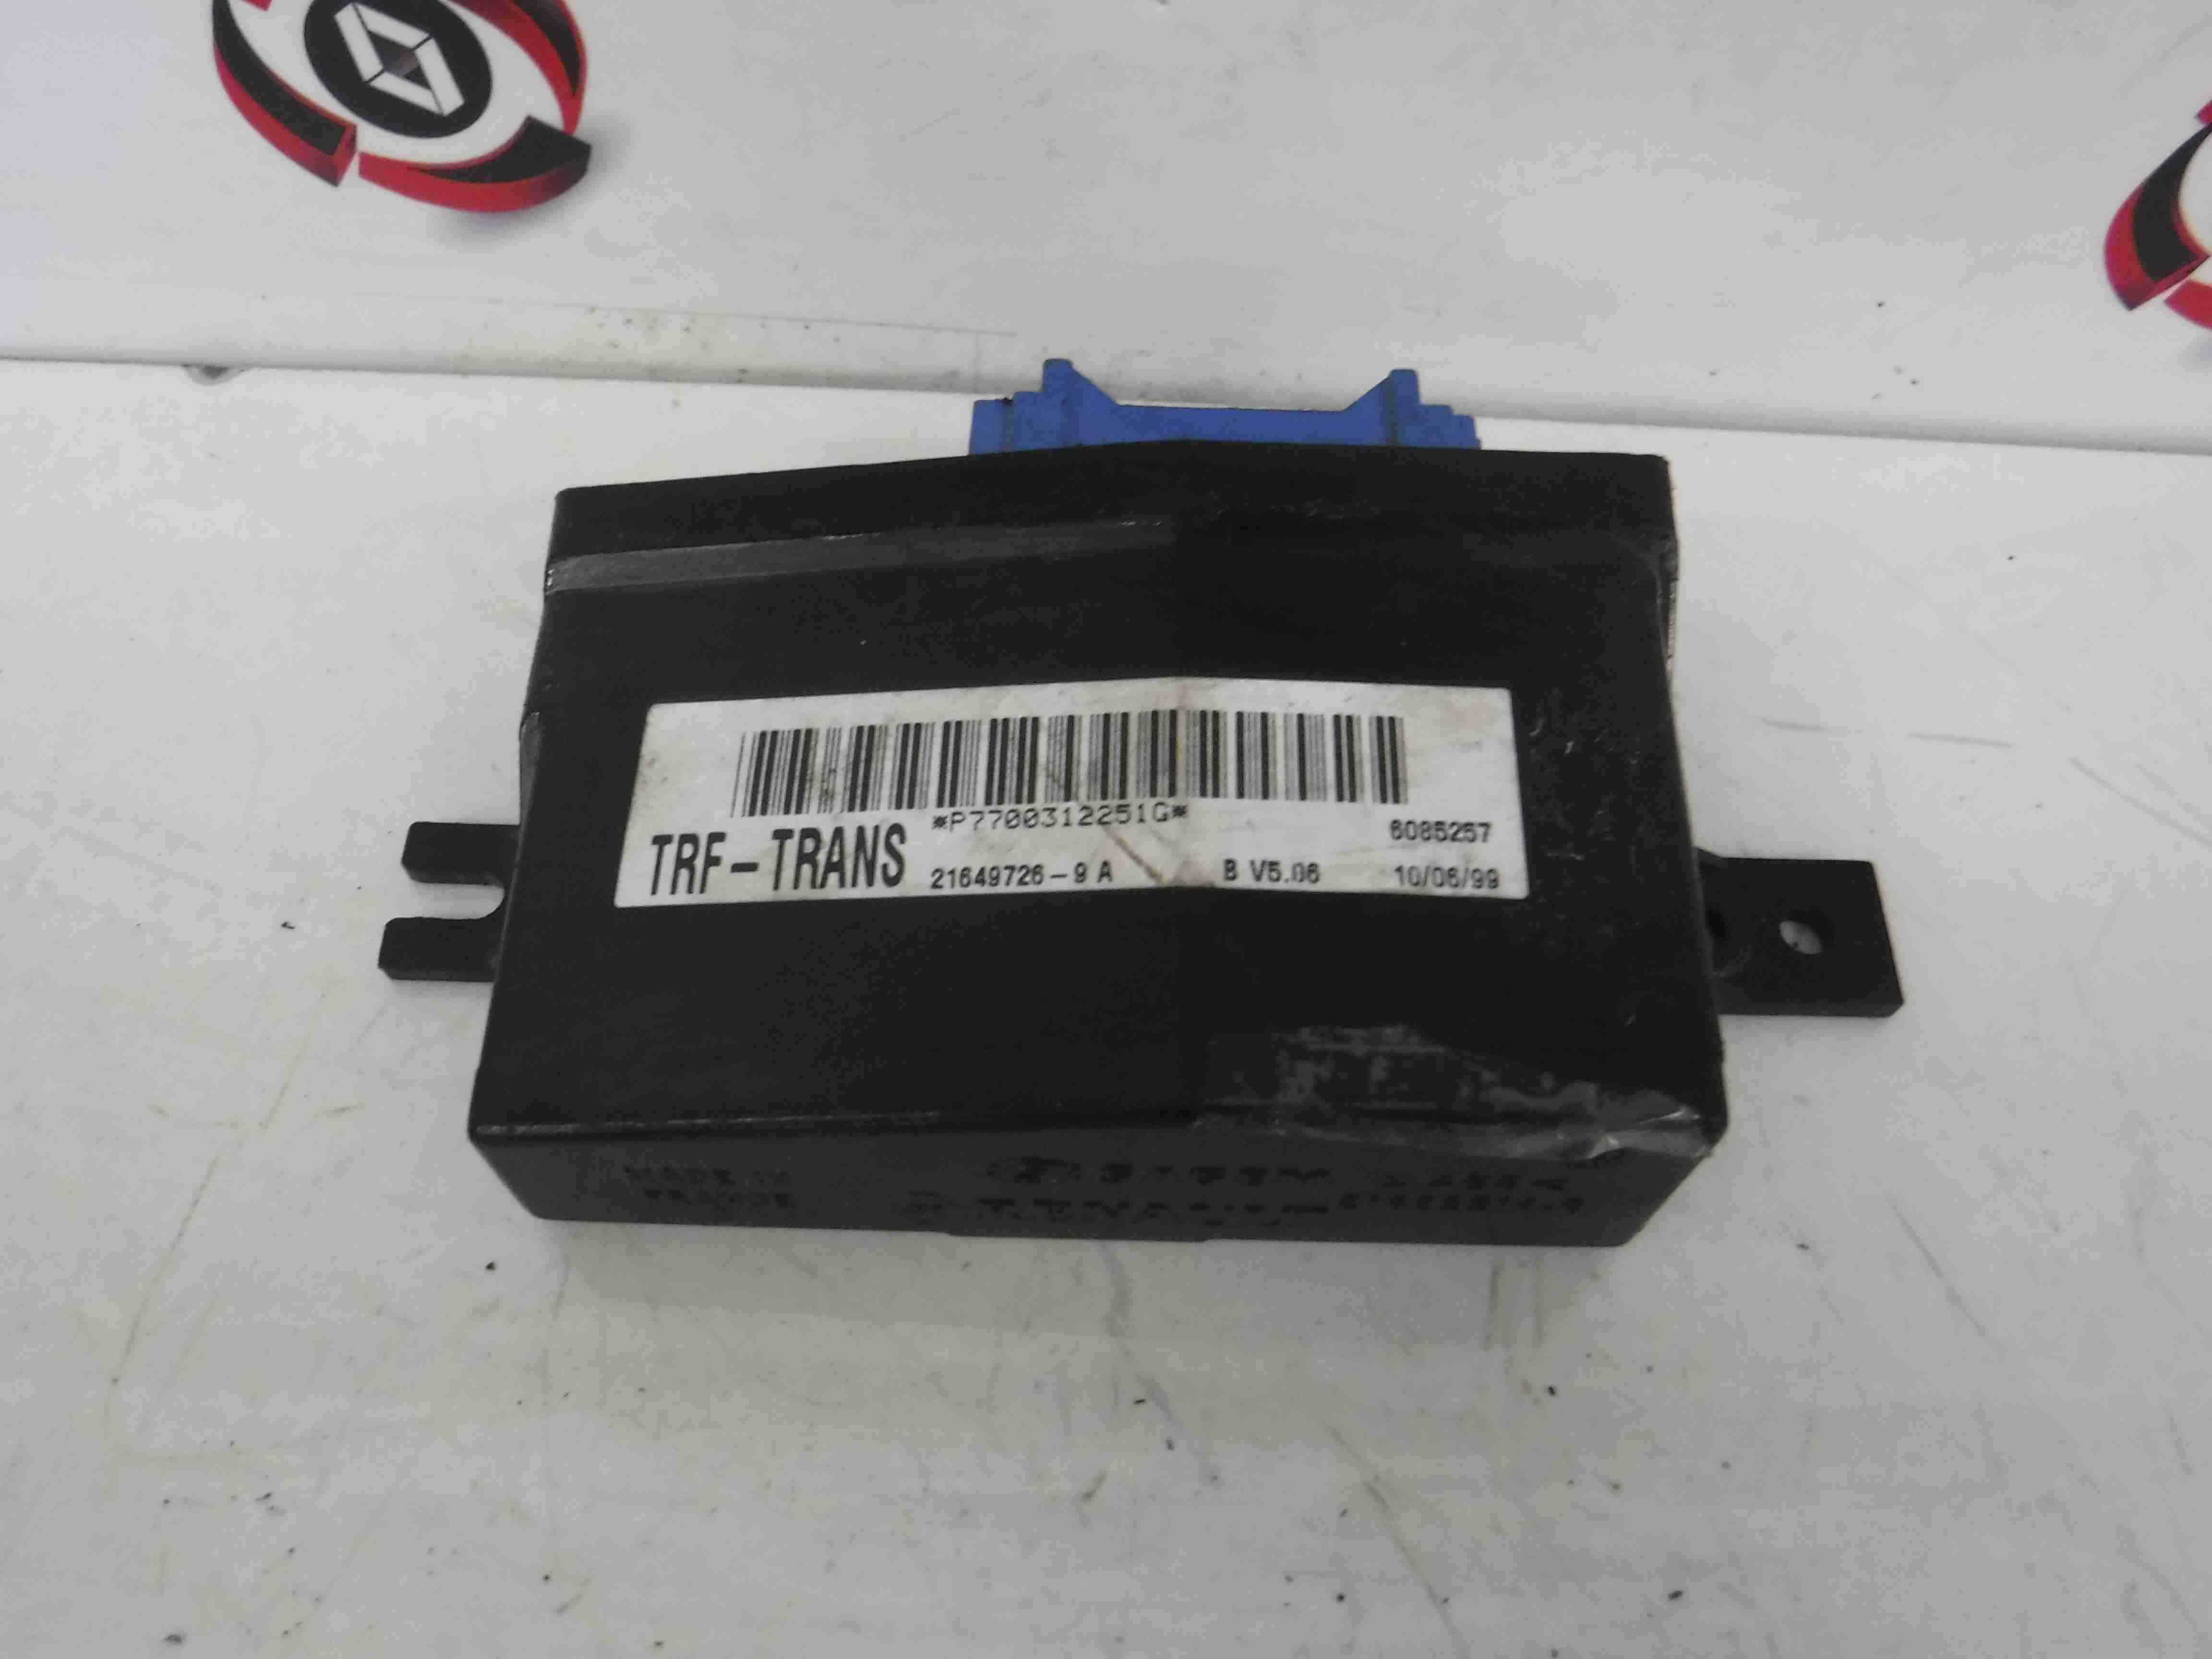 Fuse Box Renault Kangoo Wiring Library Espace 1993 2003 19 D Bcm Uch Immobiliser 7700312251